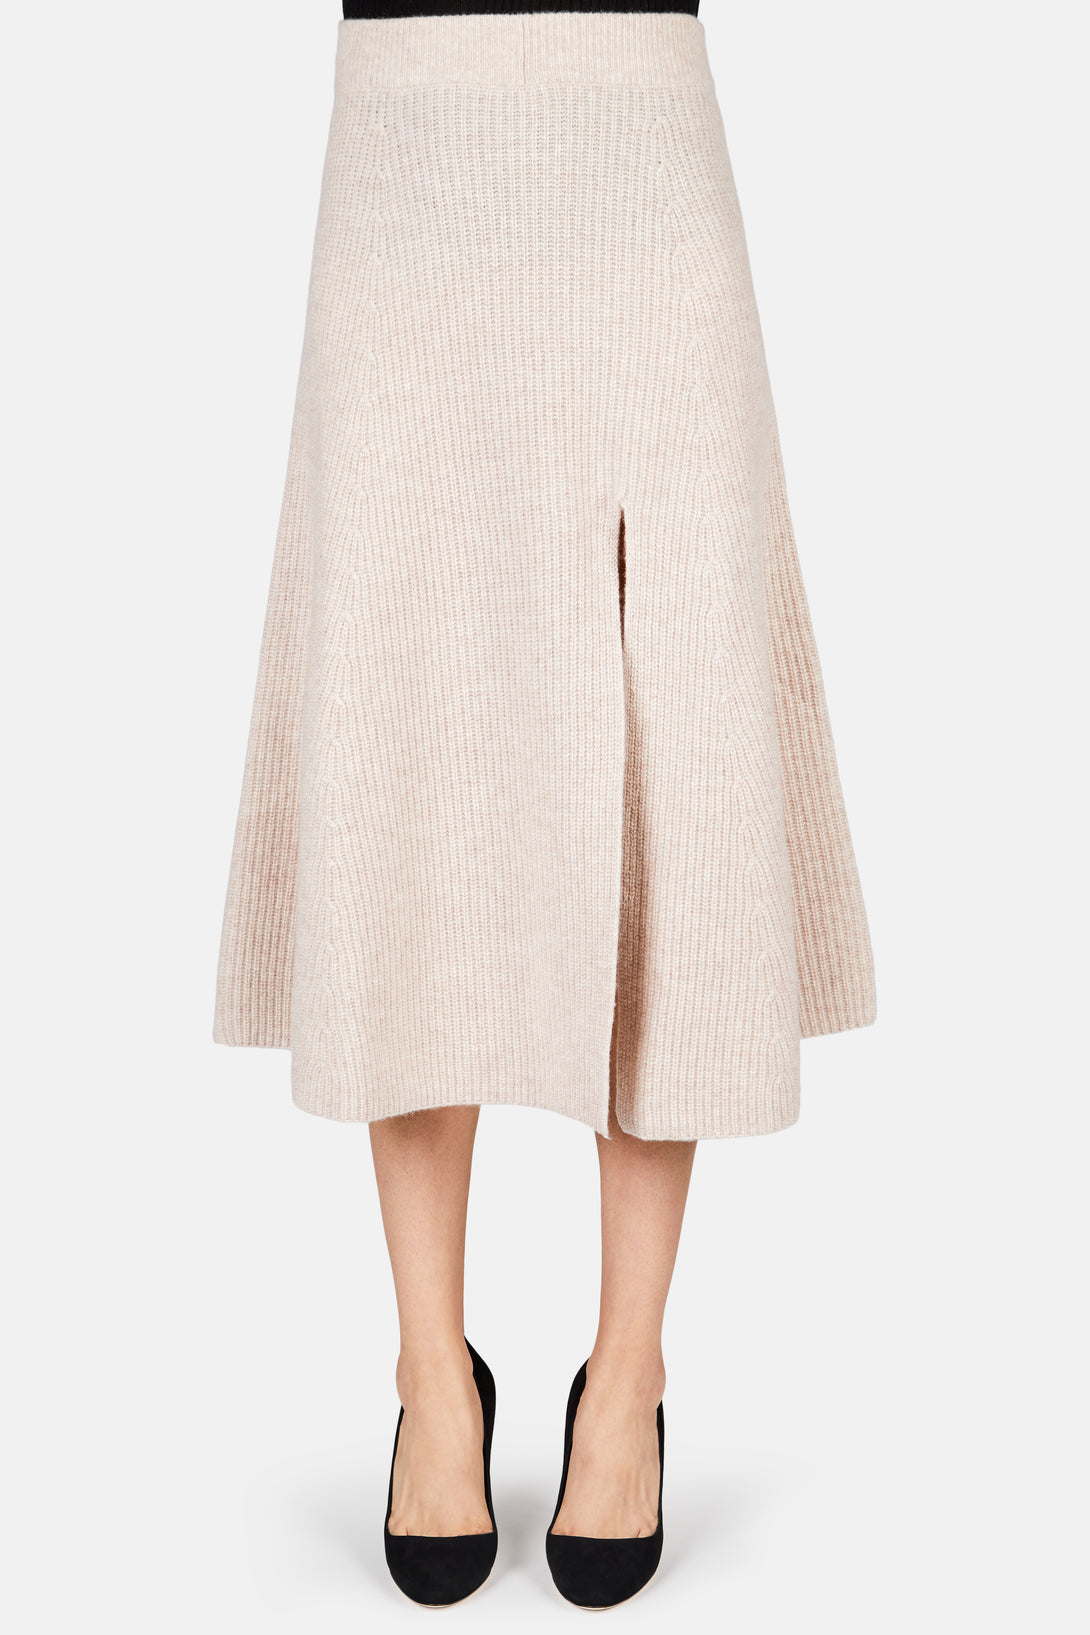 Cavin Knit Flare Midi Skirt - Almond